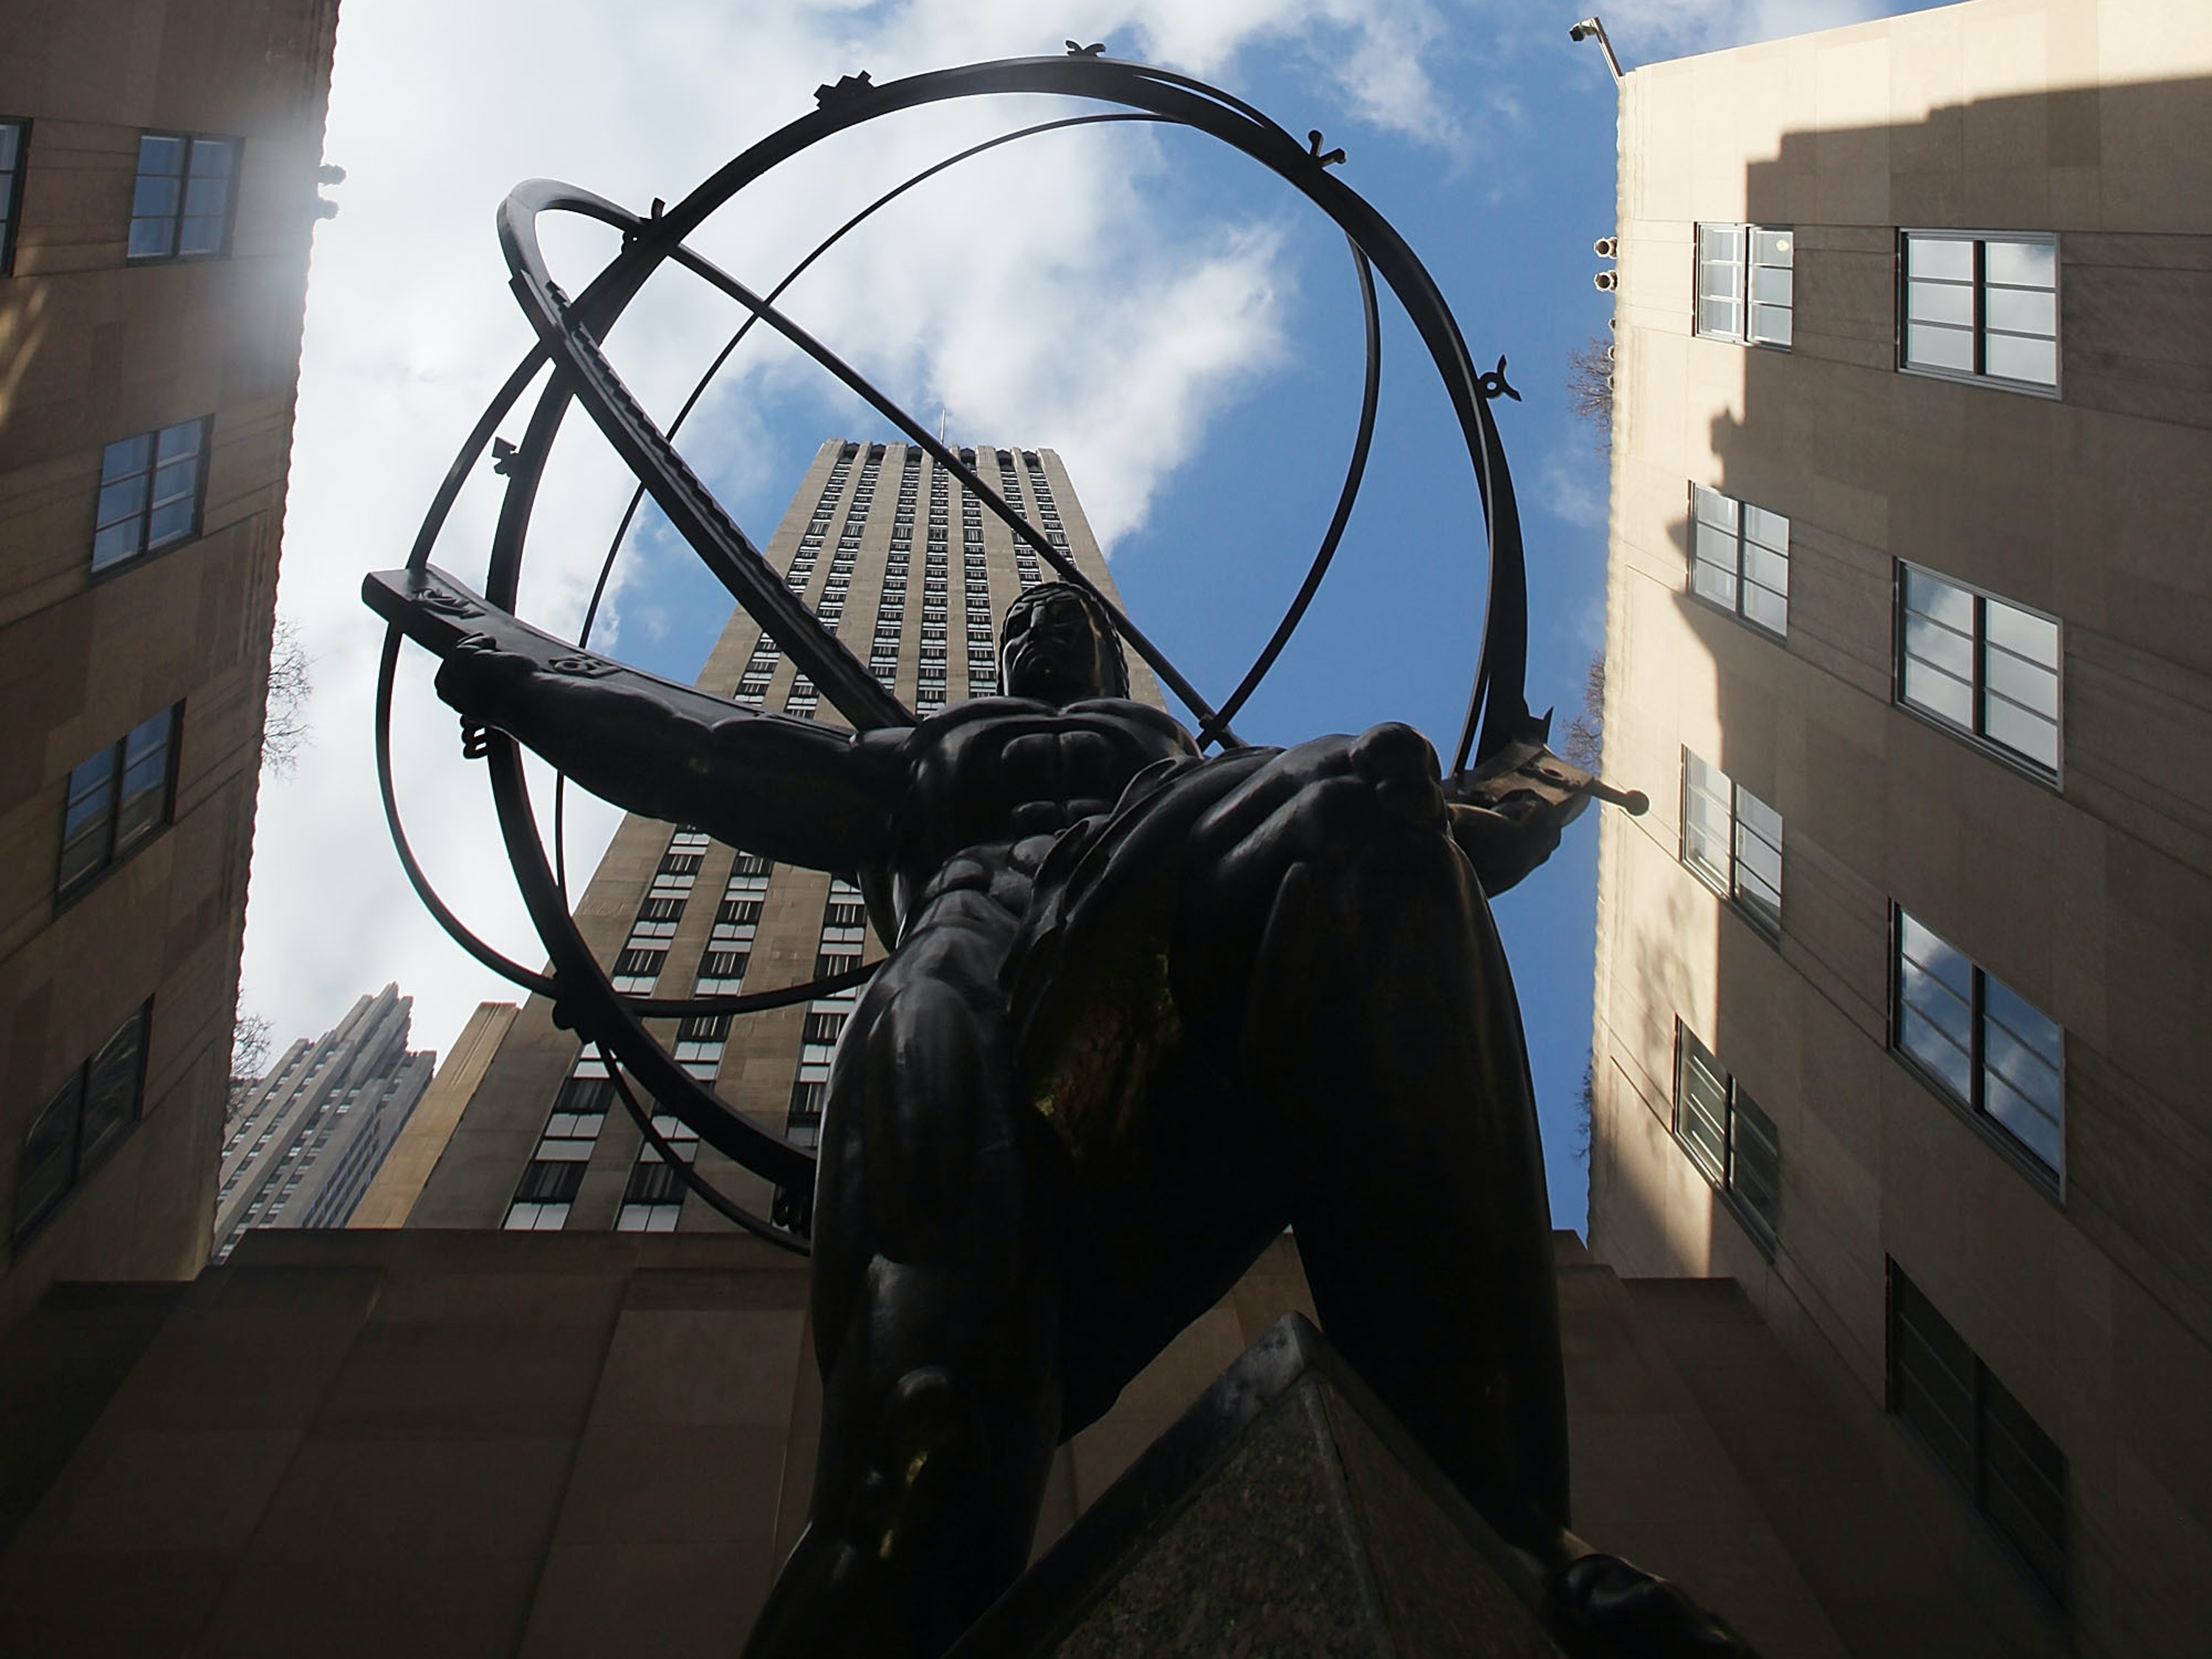 The Atlas statue in Rockefeller Center in Manhattan has come to represent Ayn Rand and objectivism.